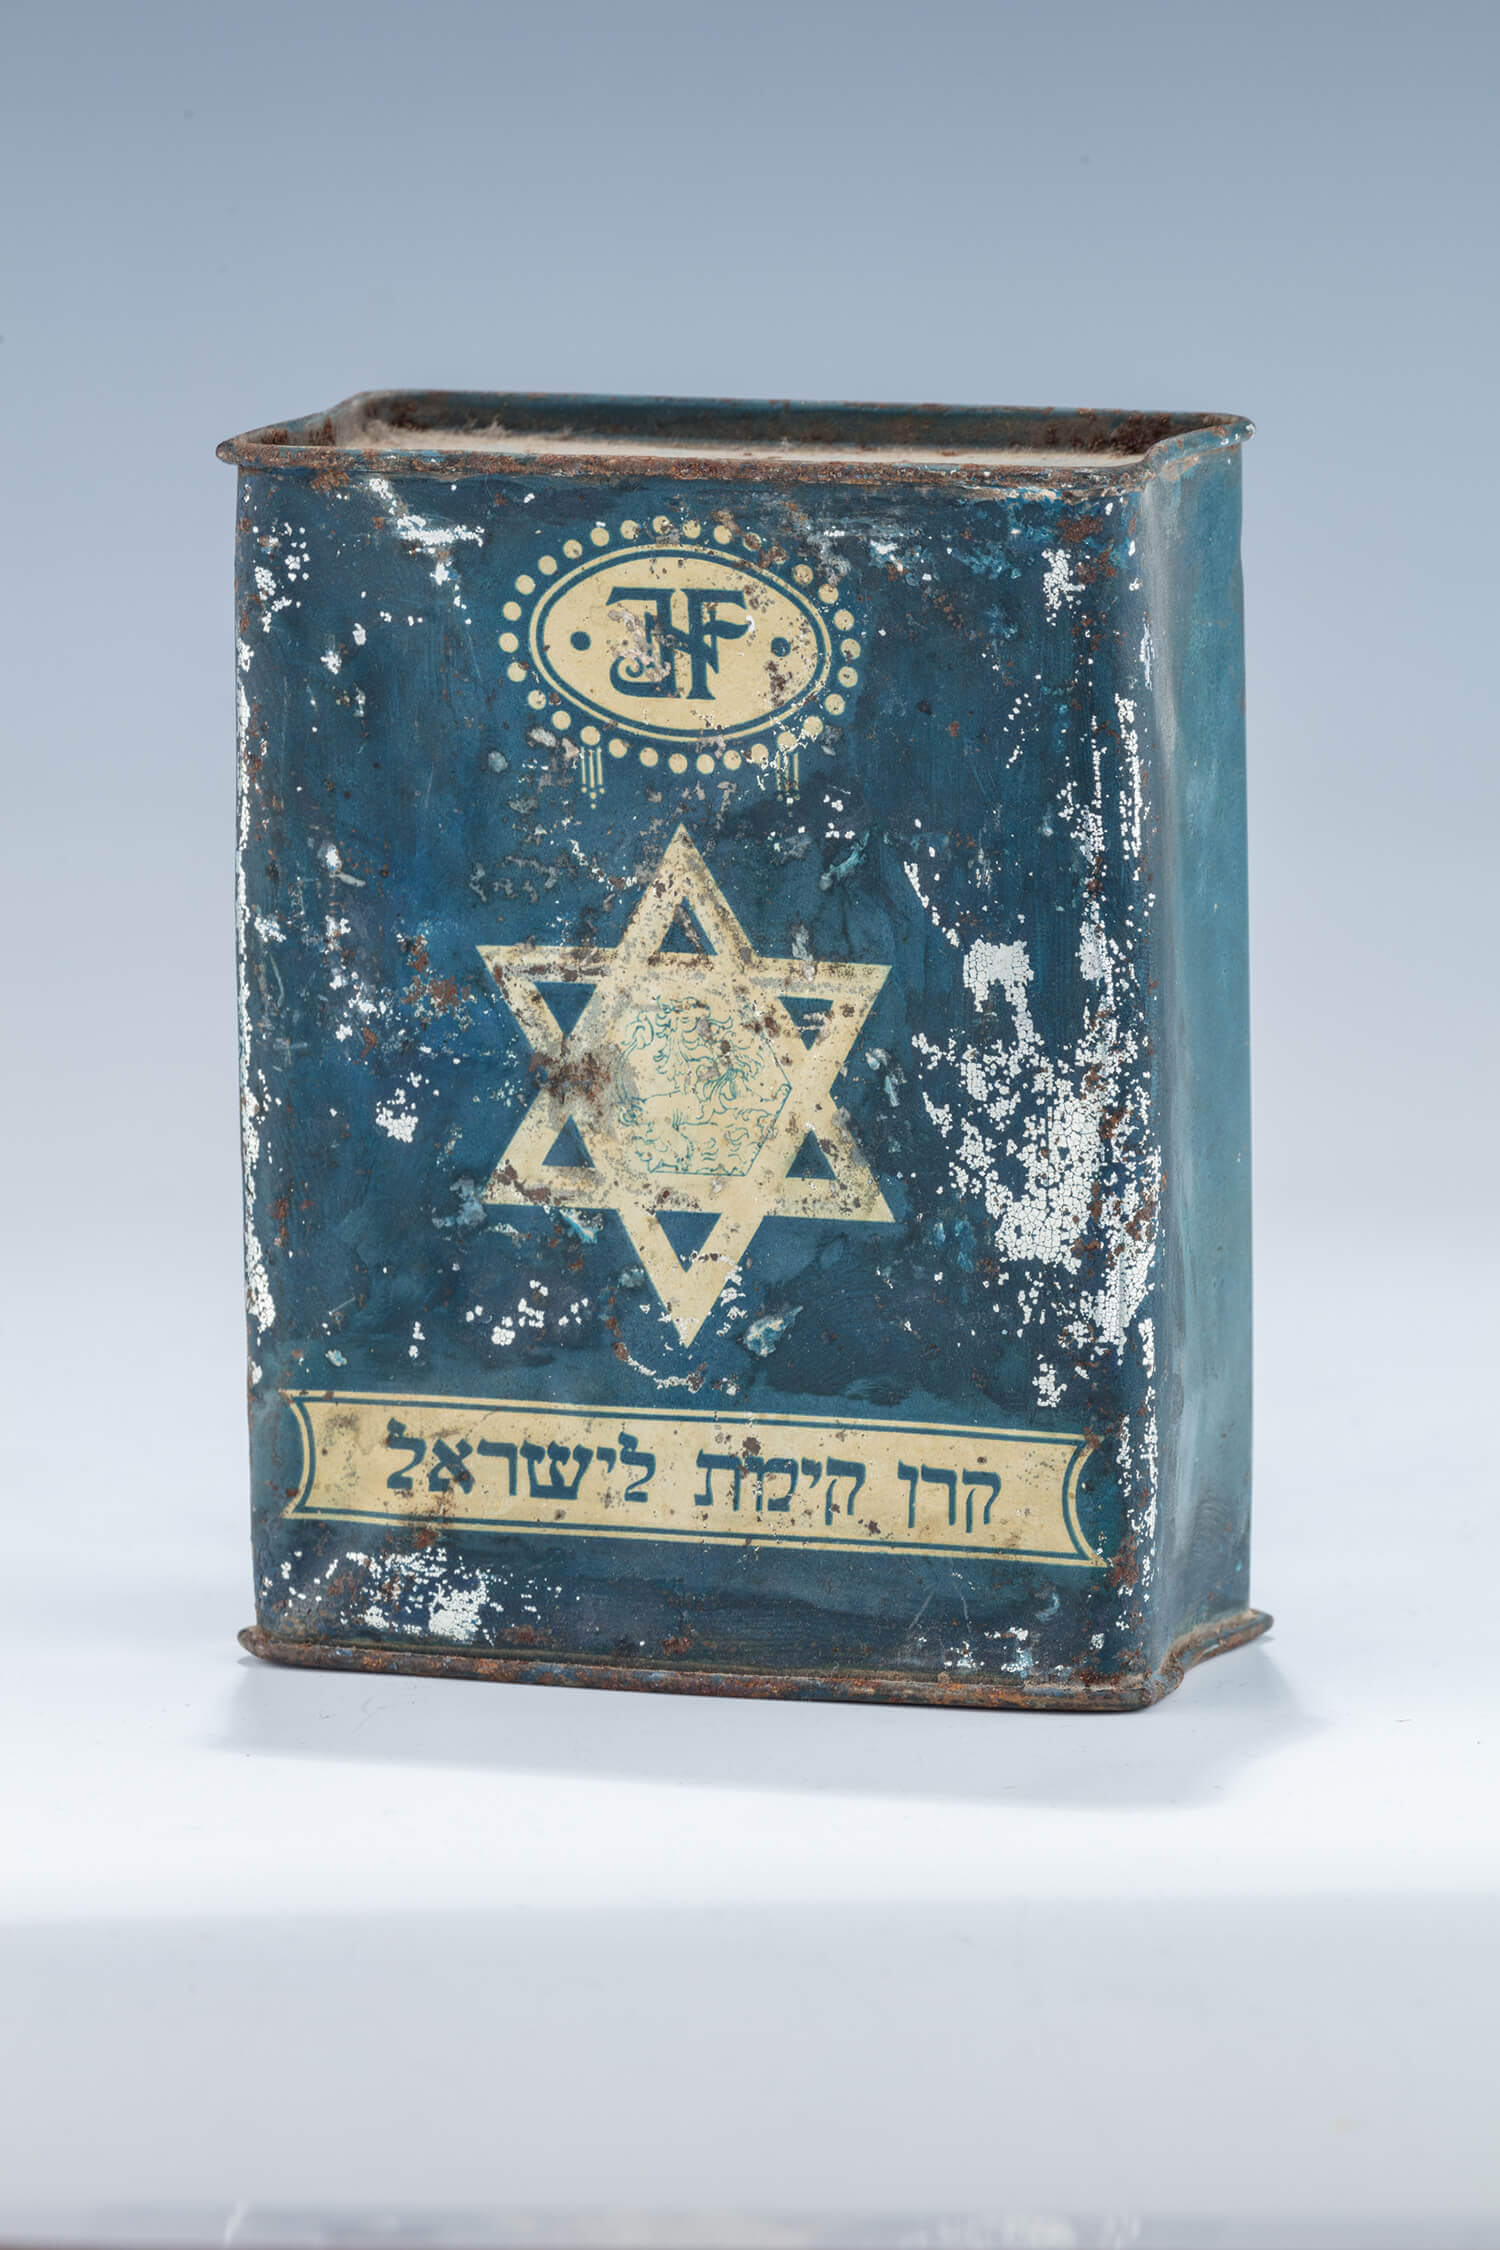 008. A RARE AND IMPORTANT JNF COLLECTION BOX